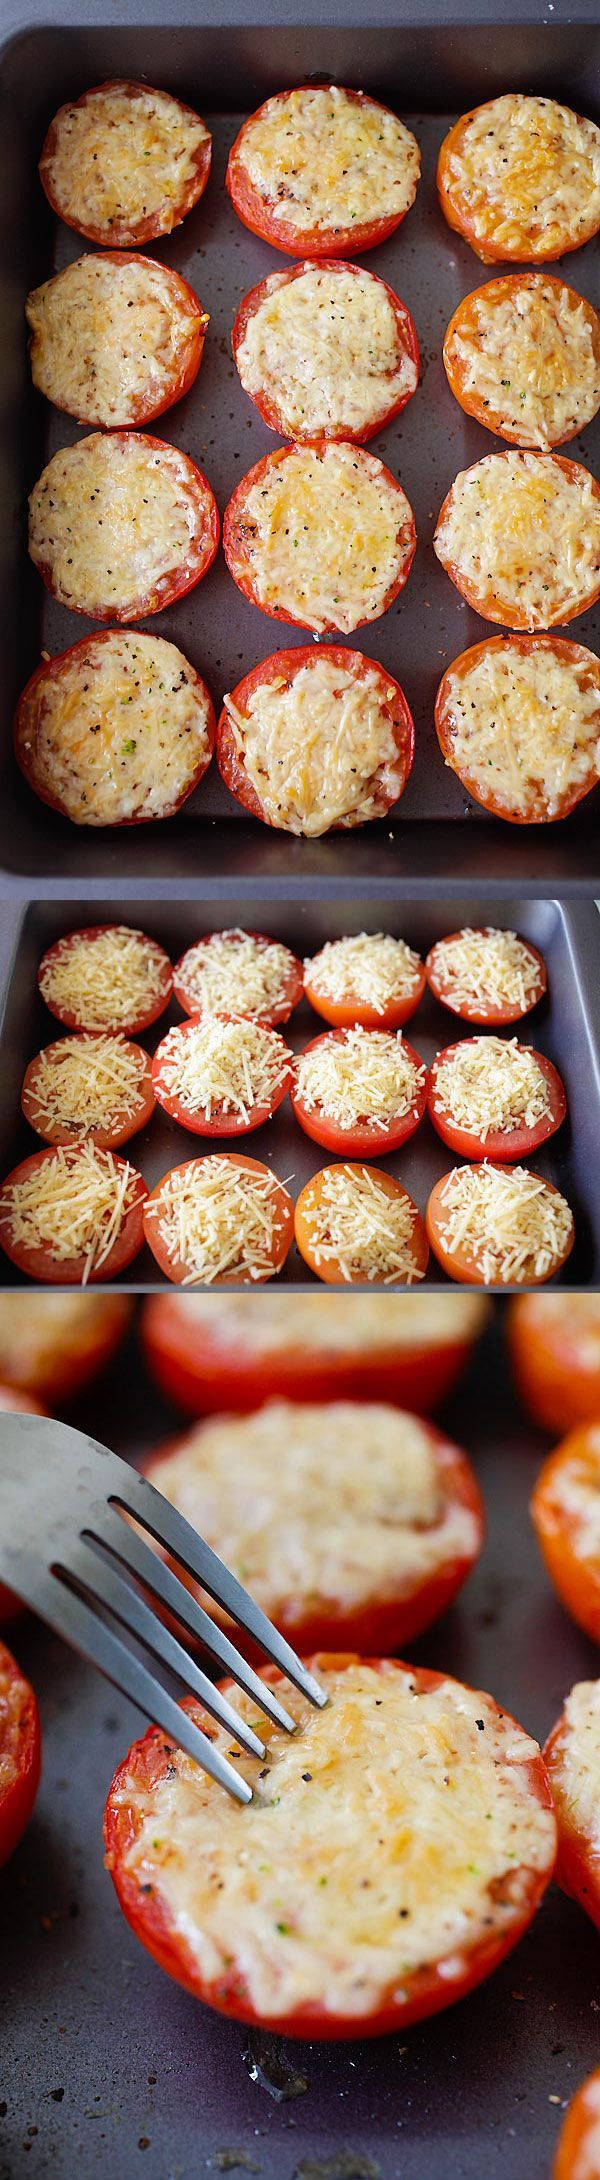 Parmesan Roasted Tomatoes - juicy and plump roasted tomatoes loaded with Parmesan cheese. So easy to make, fool-proof and amazing! | http://rasamalaysia.com